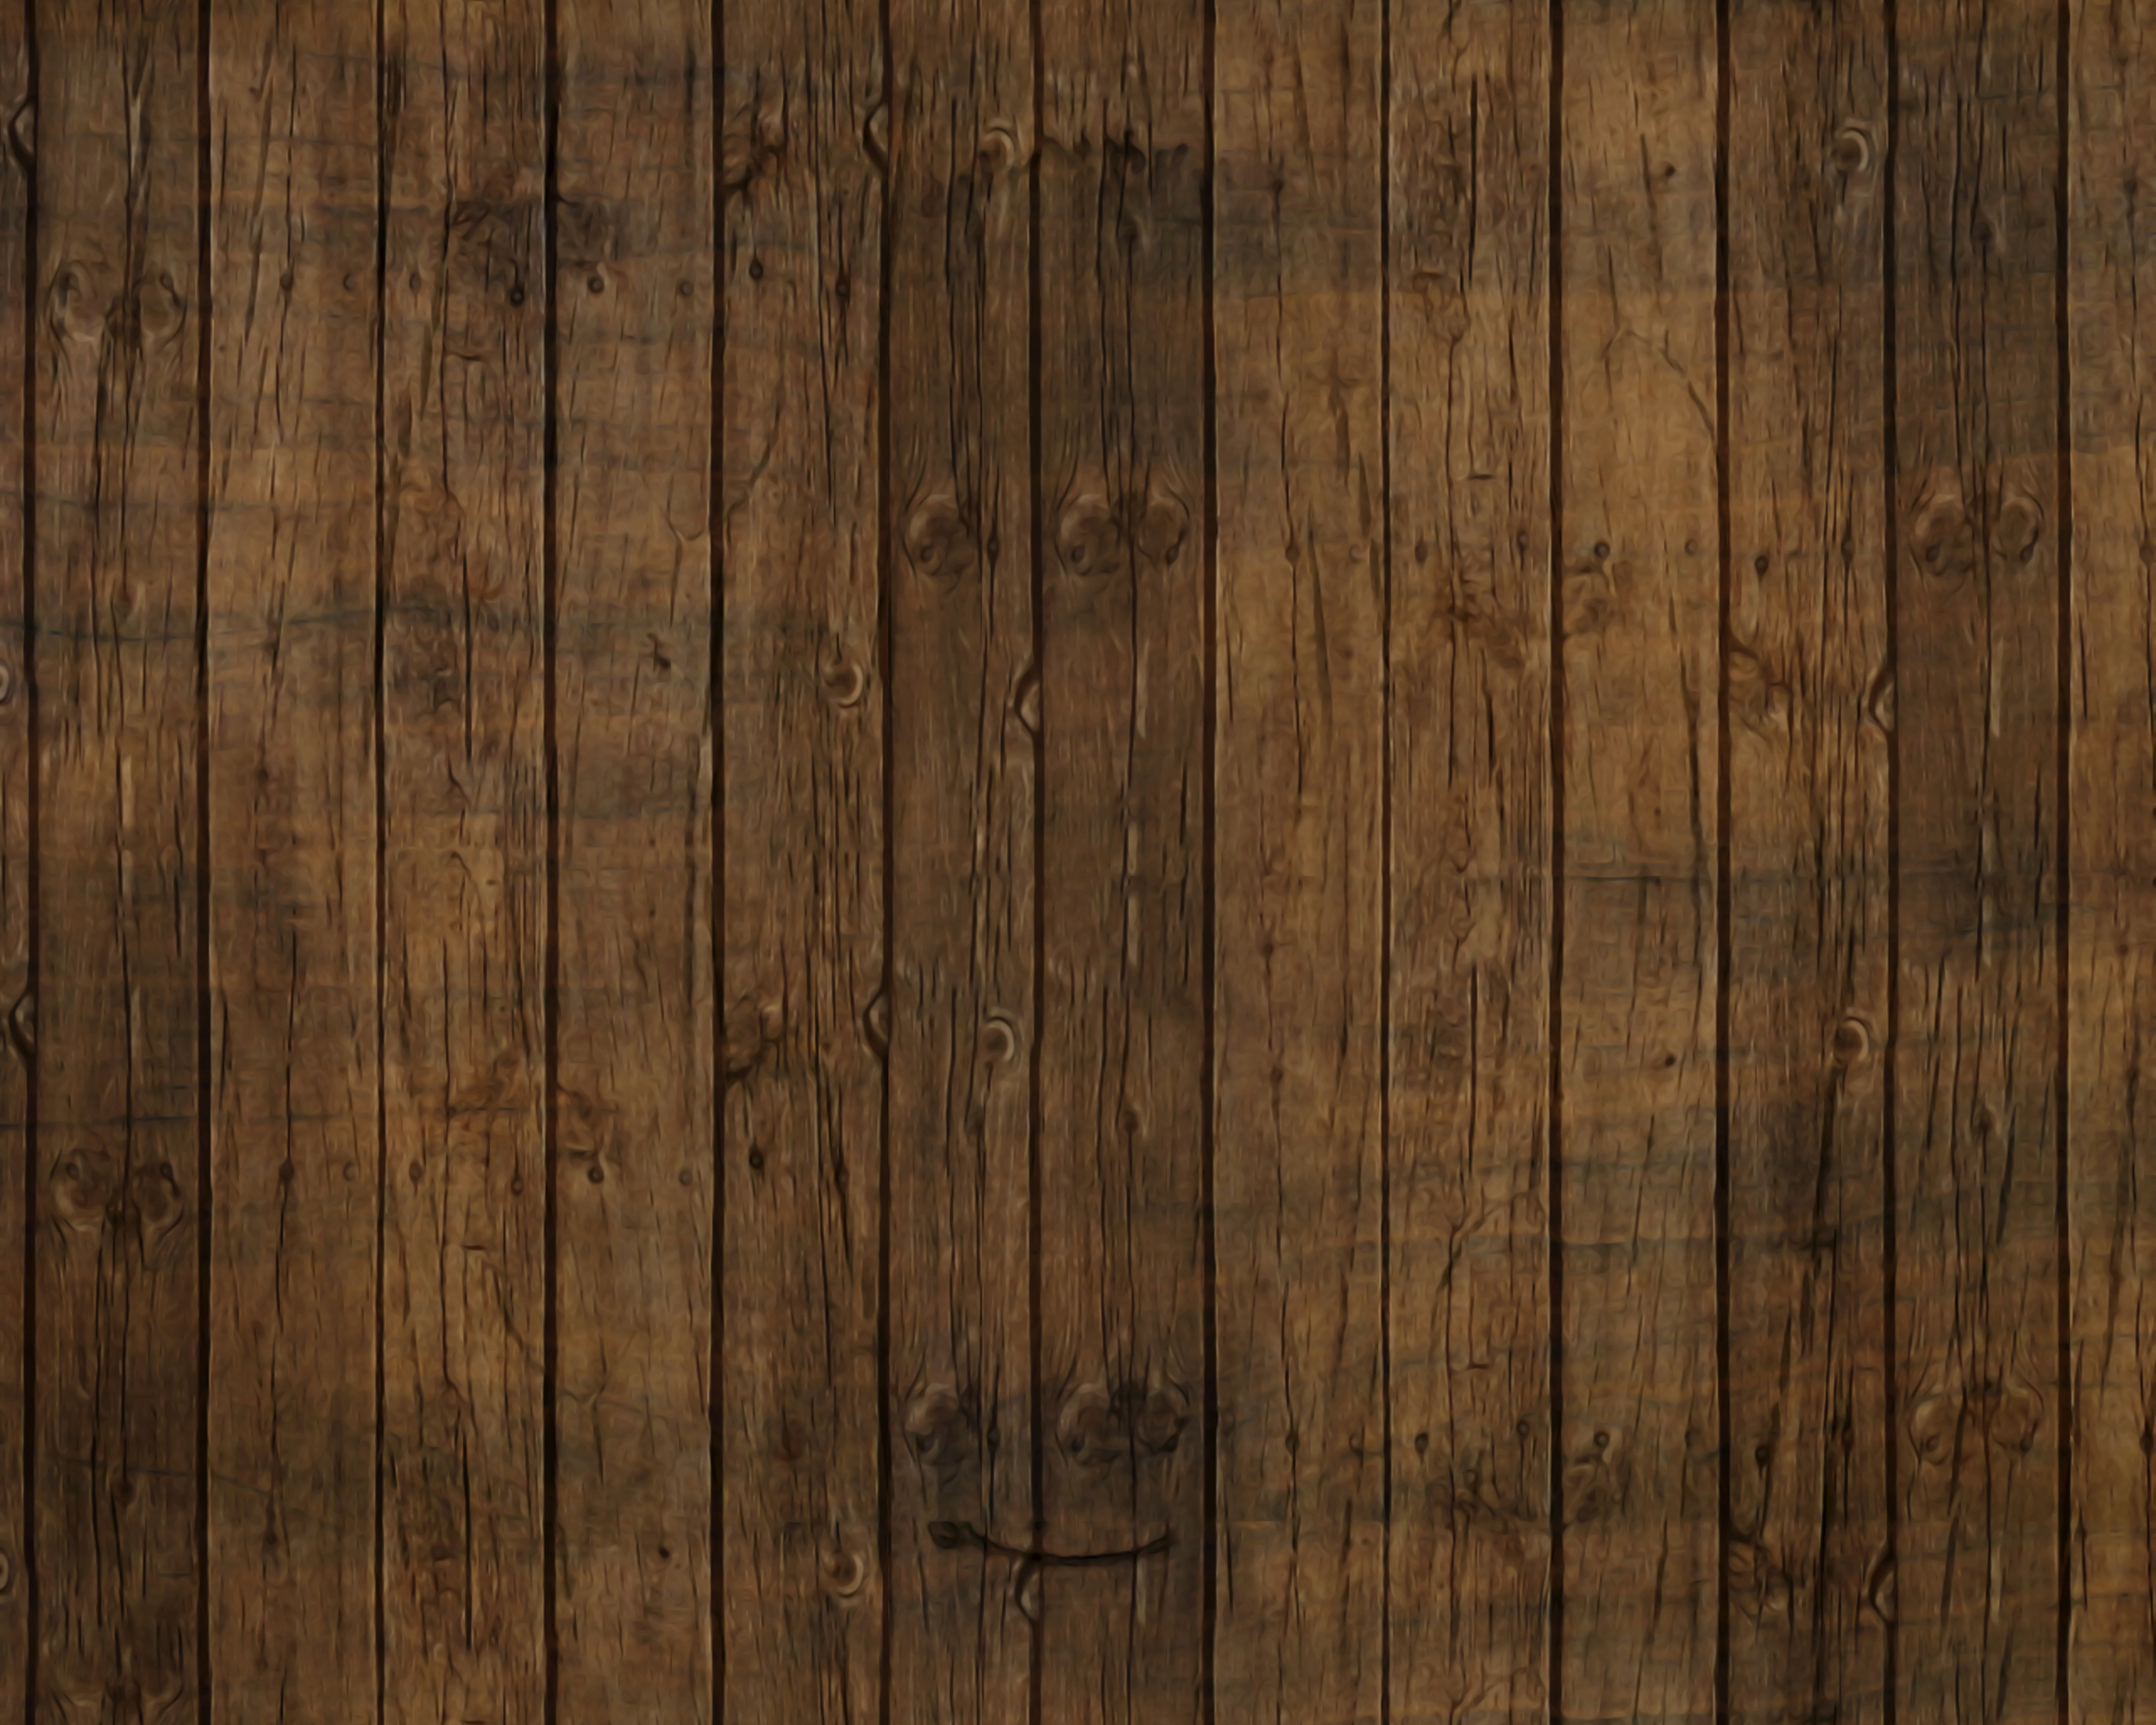 Dark Wood Table Texture Hd